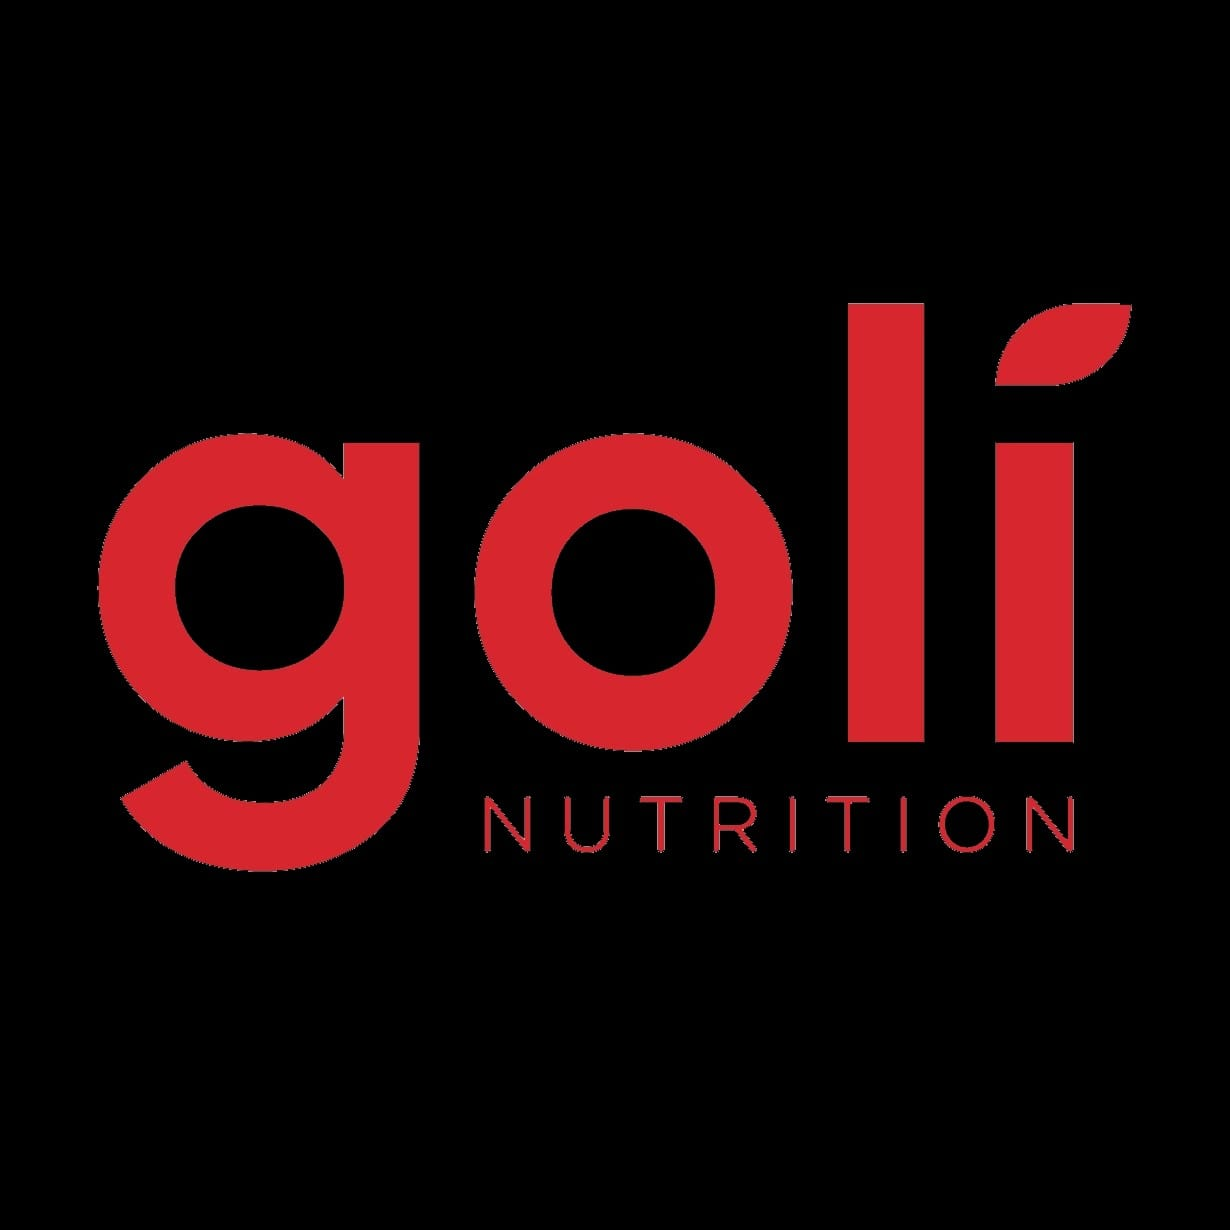 Up to 30% off! Black Friday Special at Goli.com!